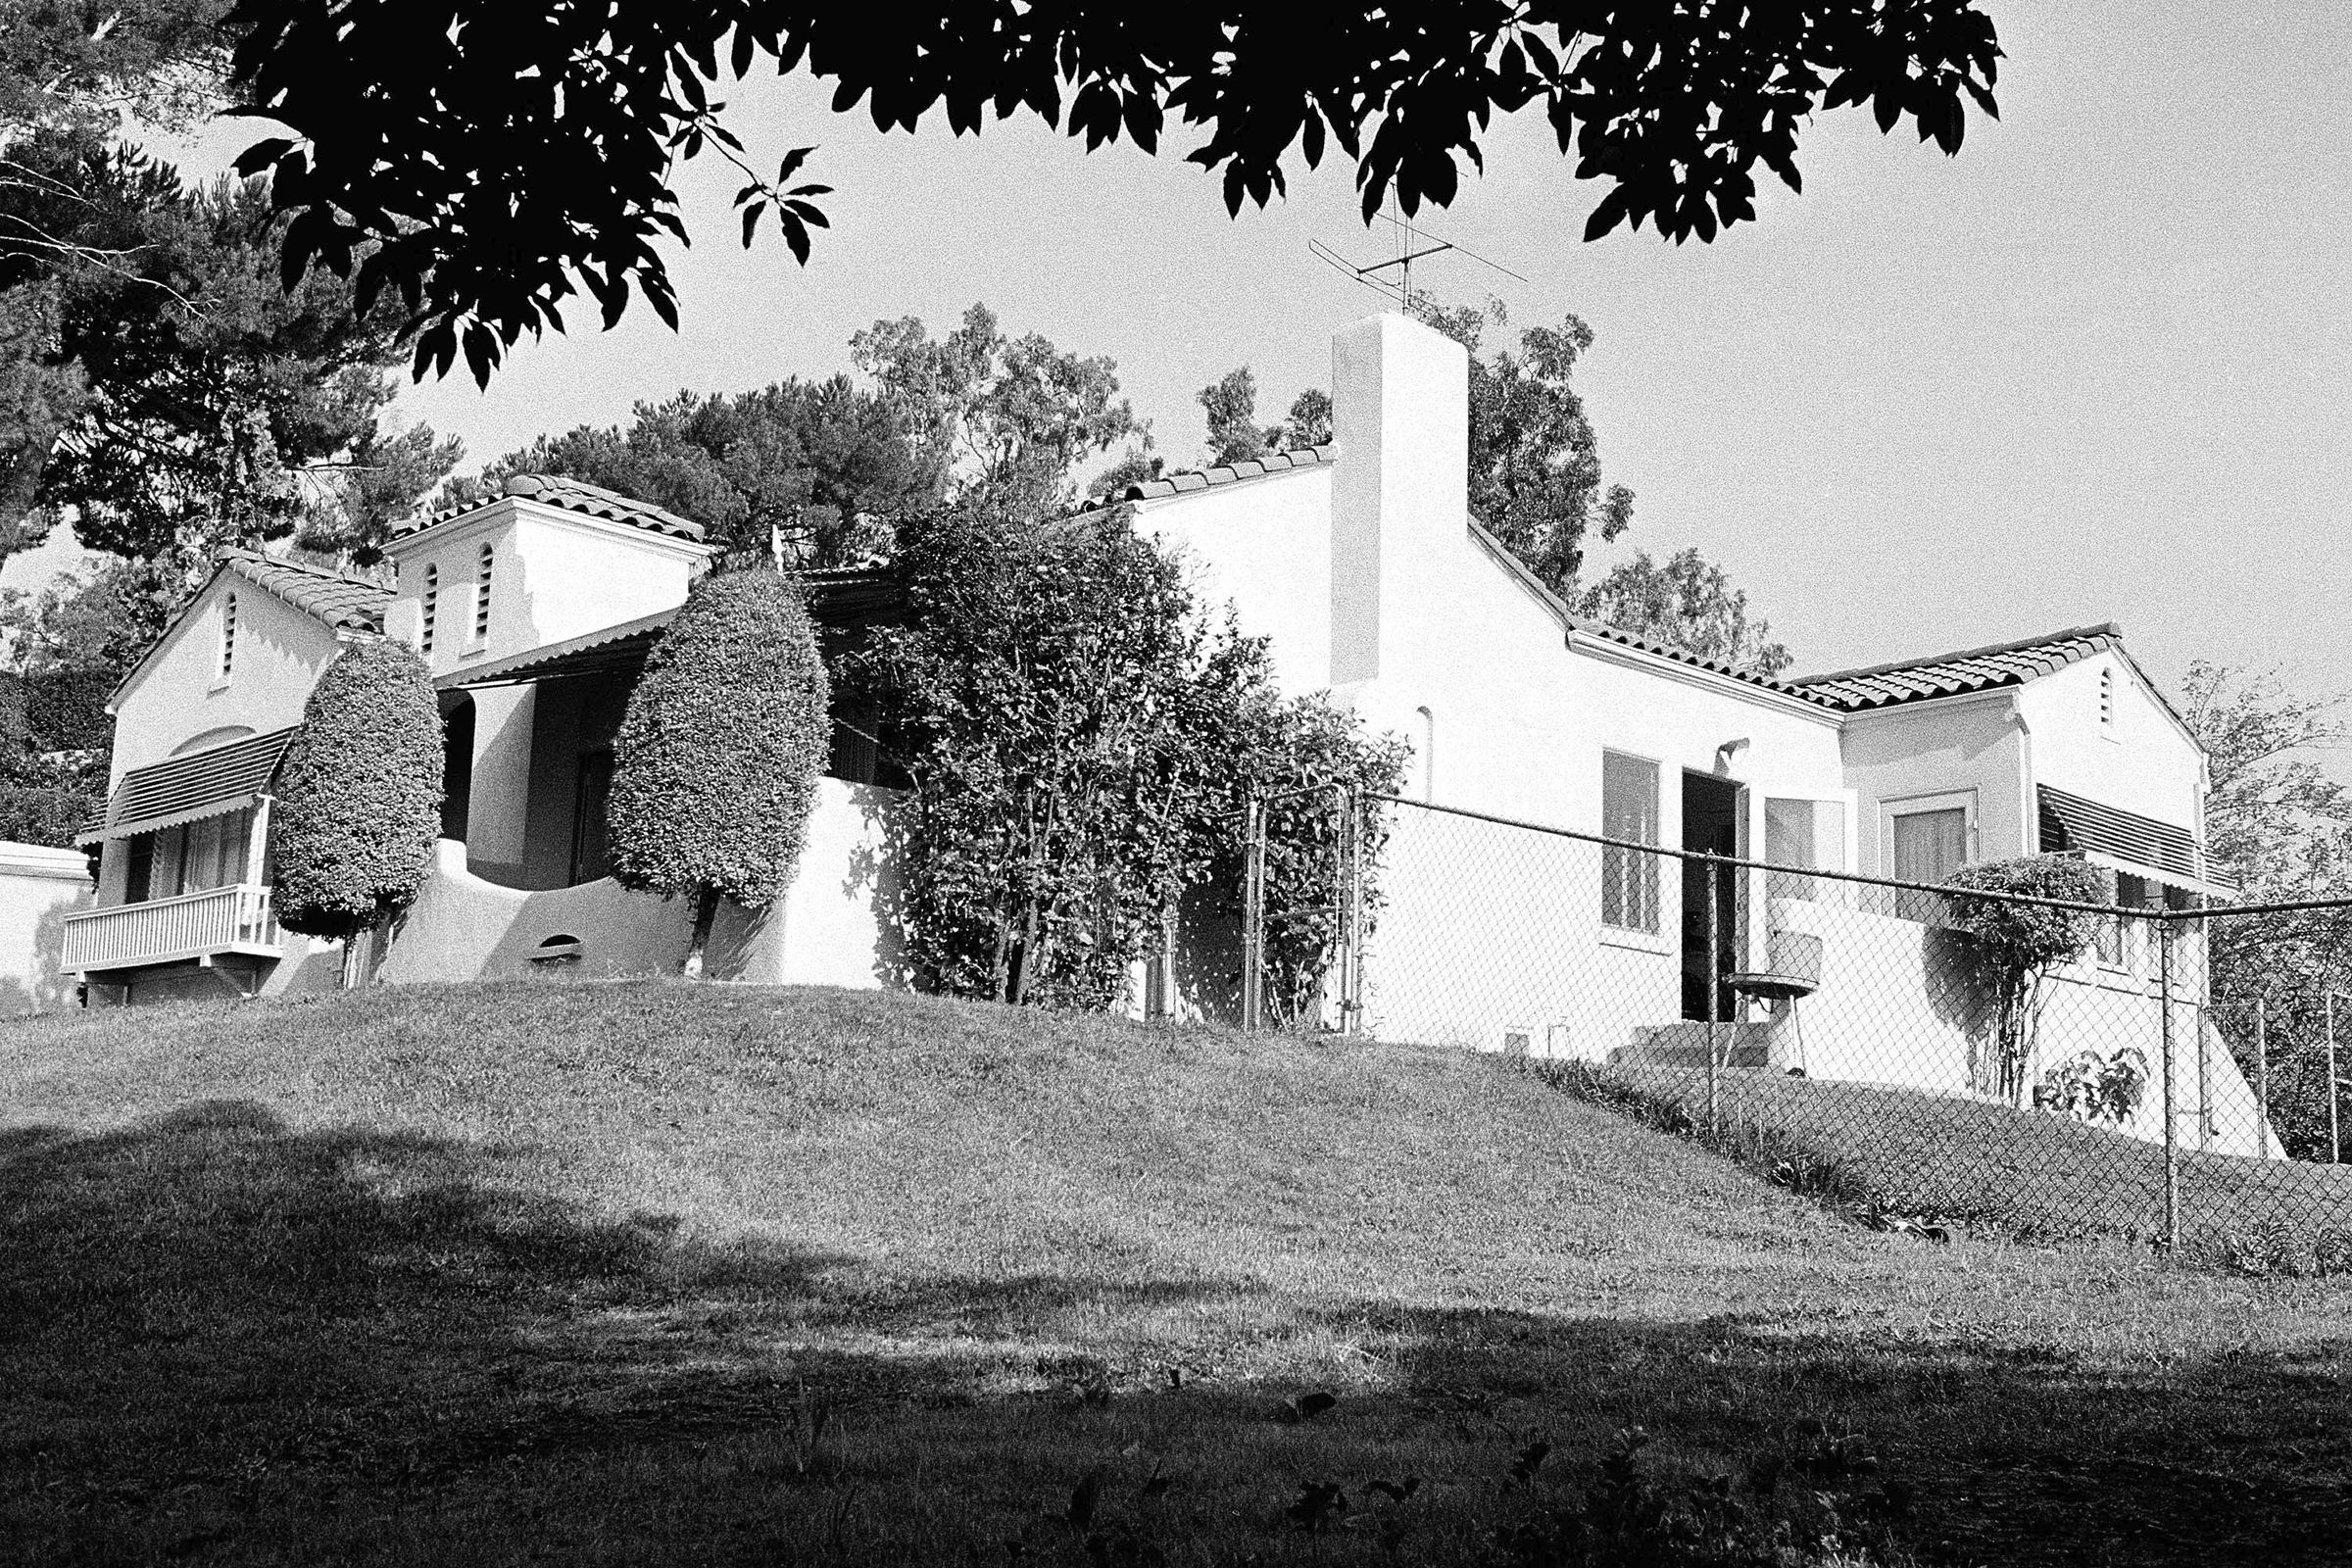 For $2 Million, a Manson Family Murder House Could Be Yours